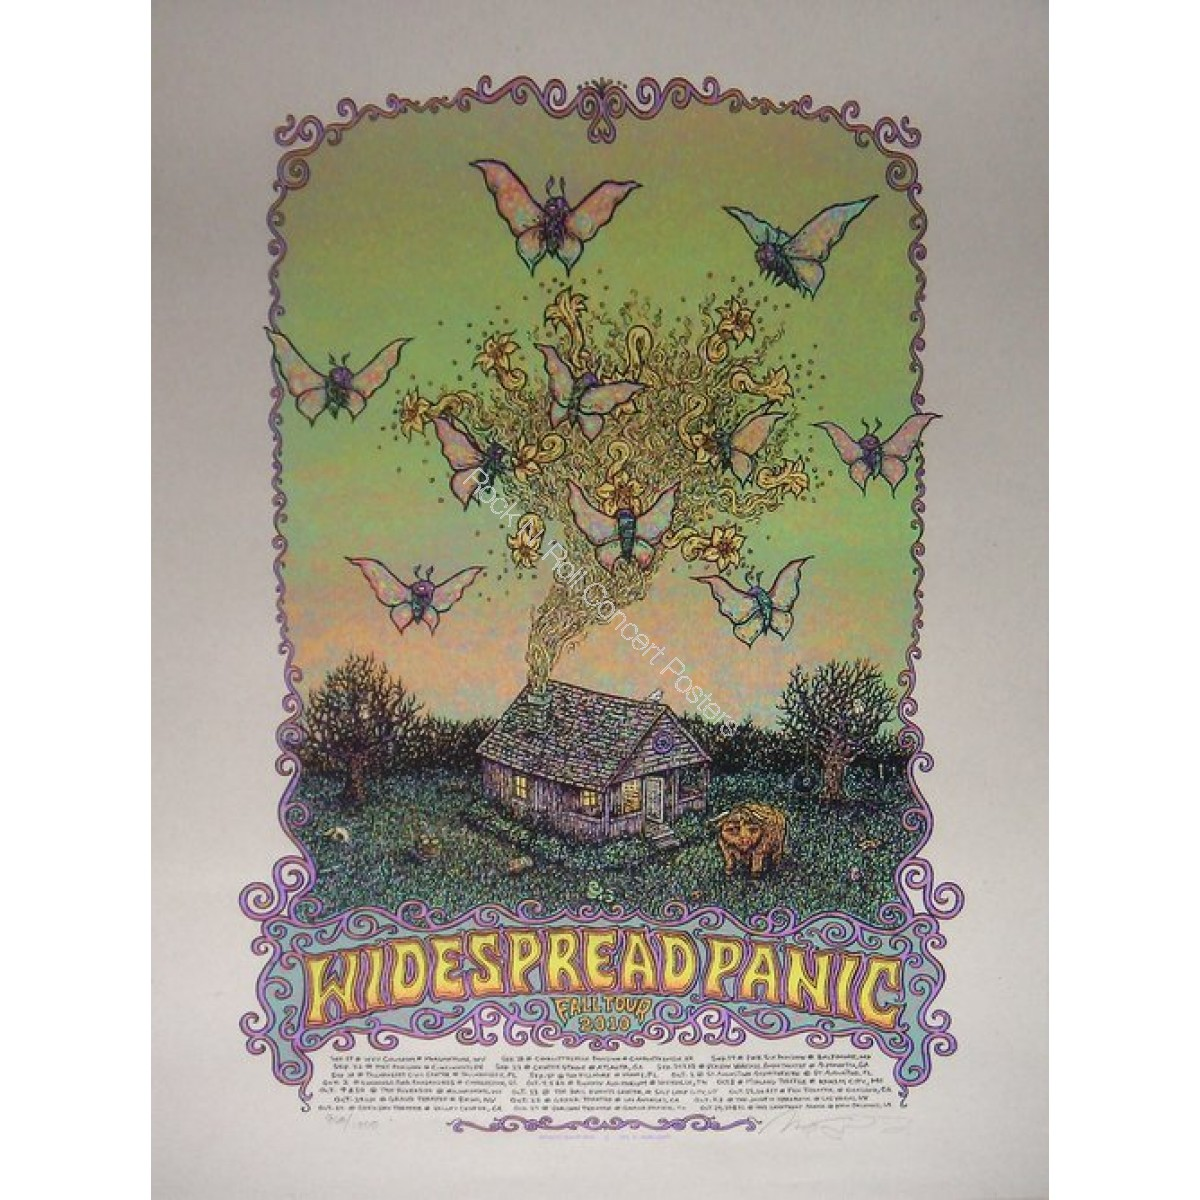 Widespread Panic Fall Tour 2010 print by Marq Spusta